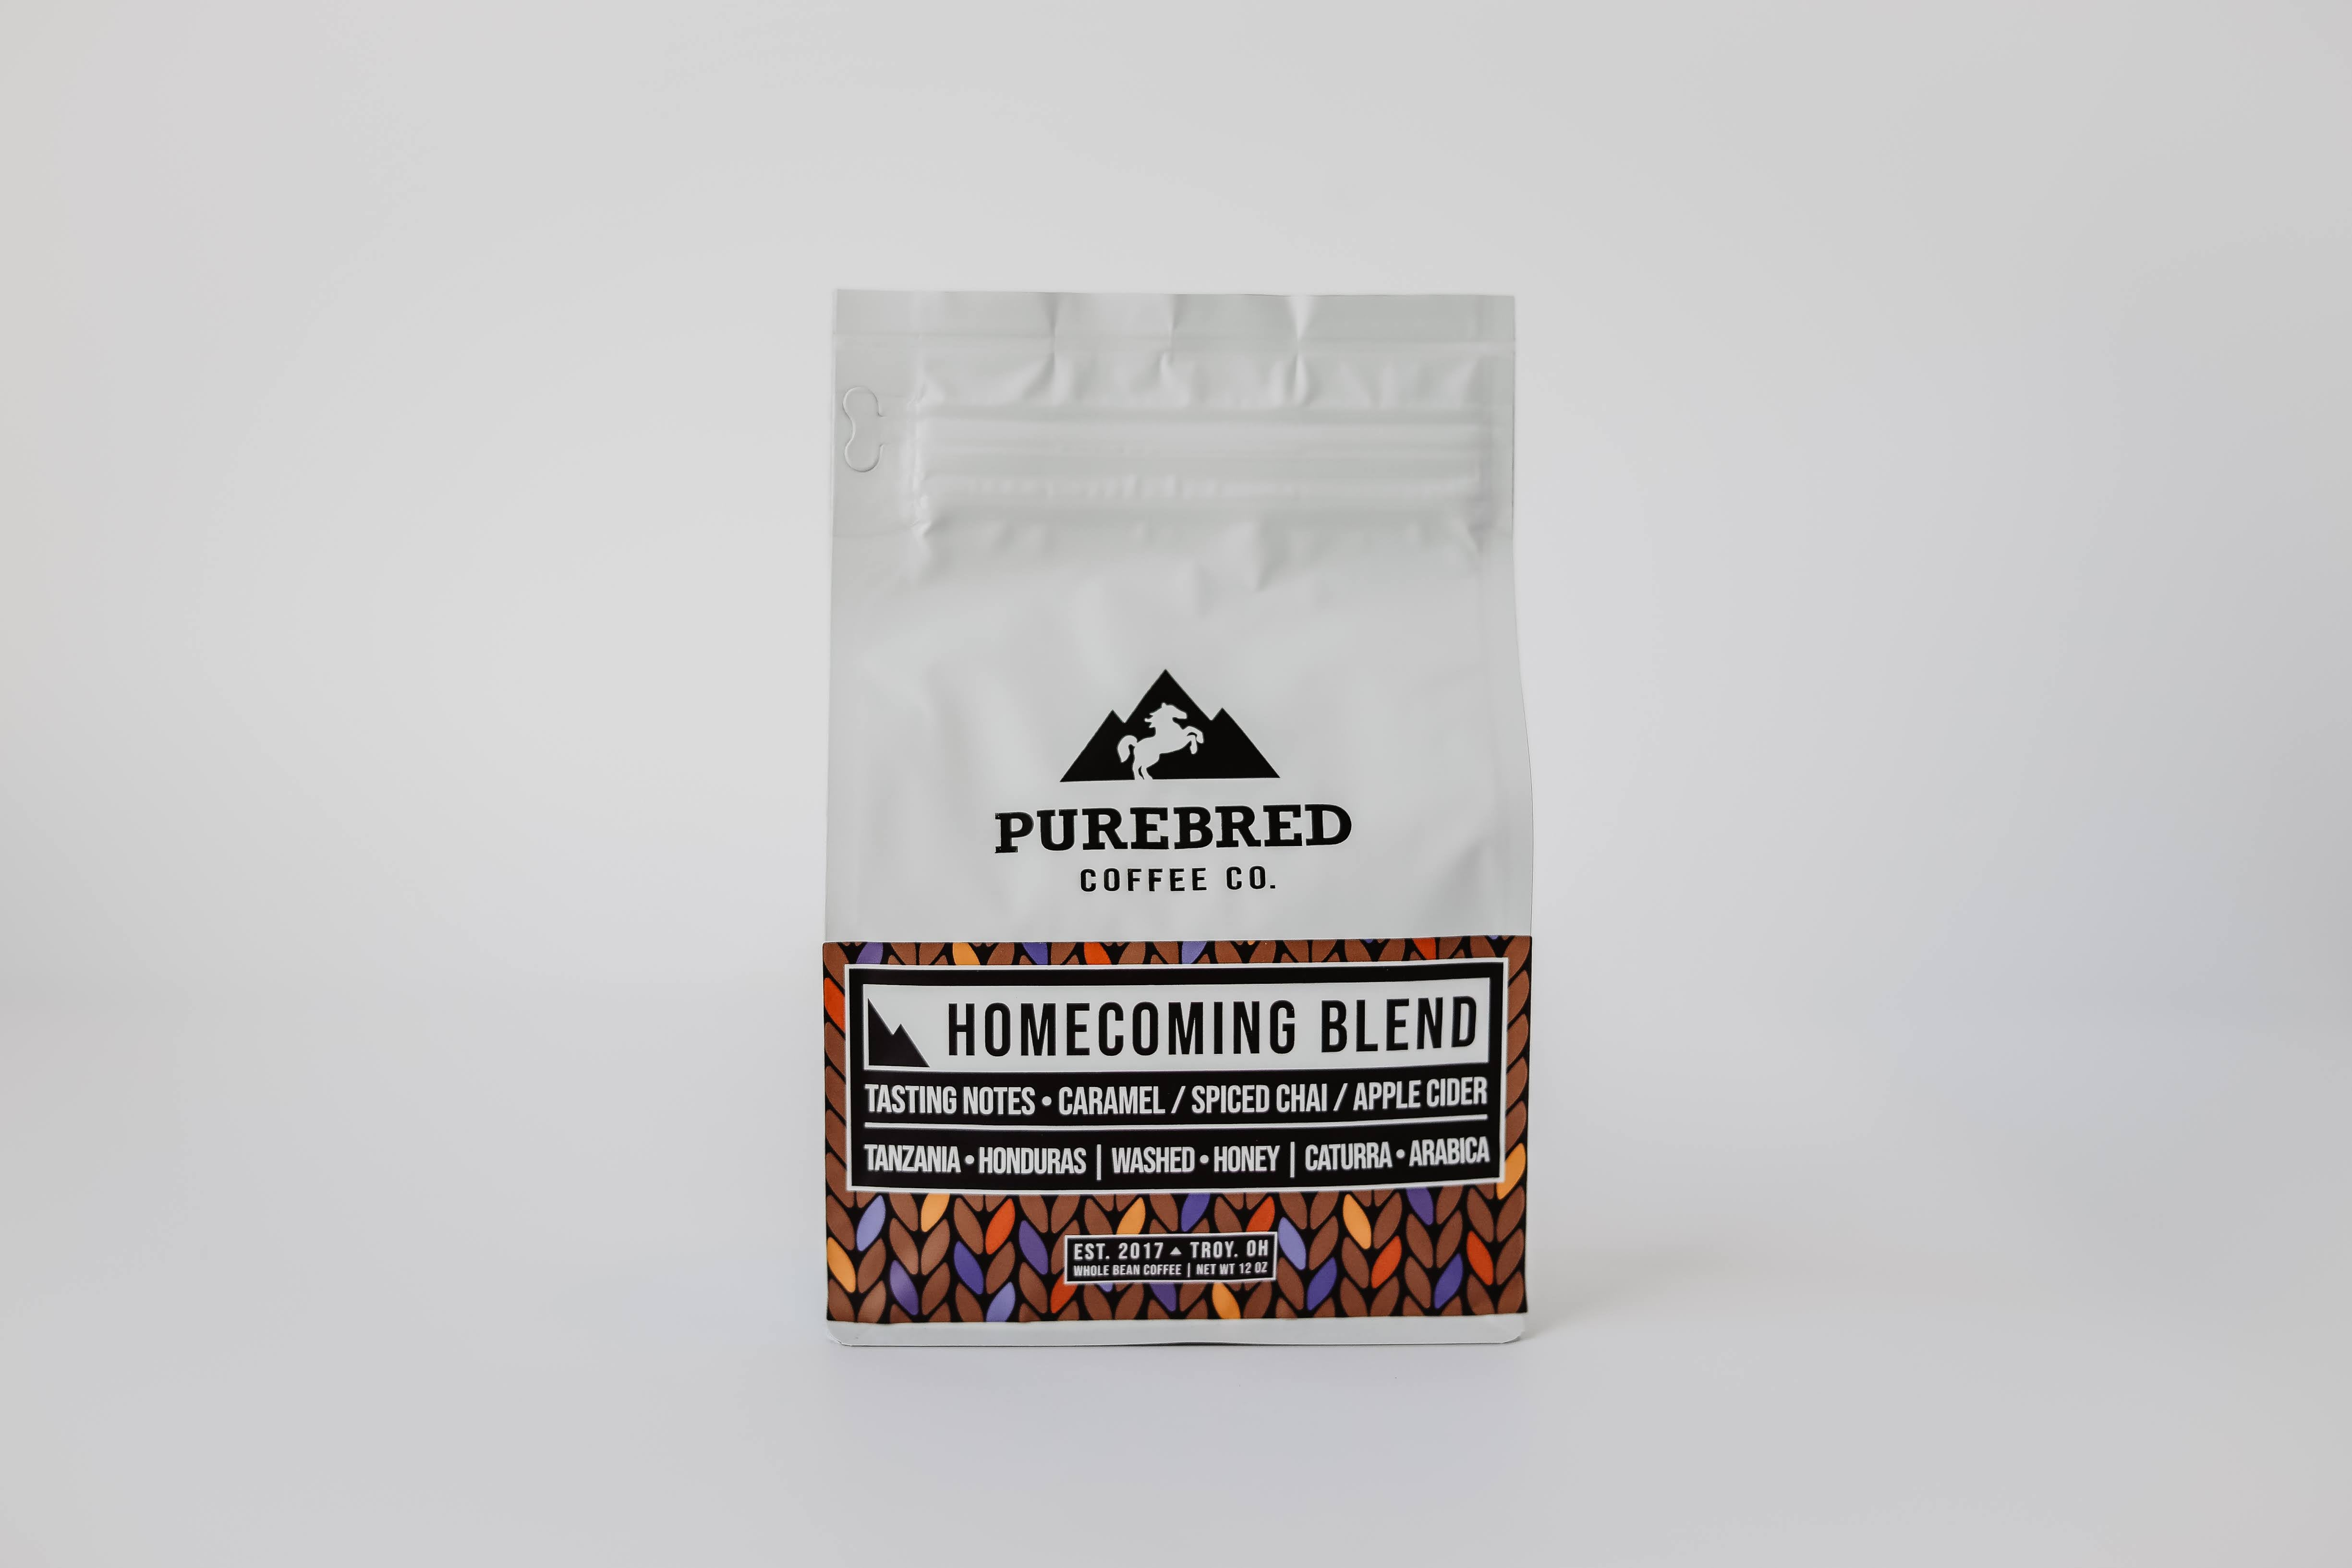 Homecoming Blend